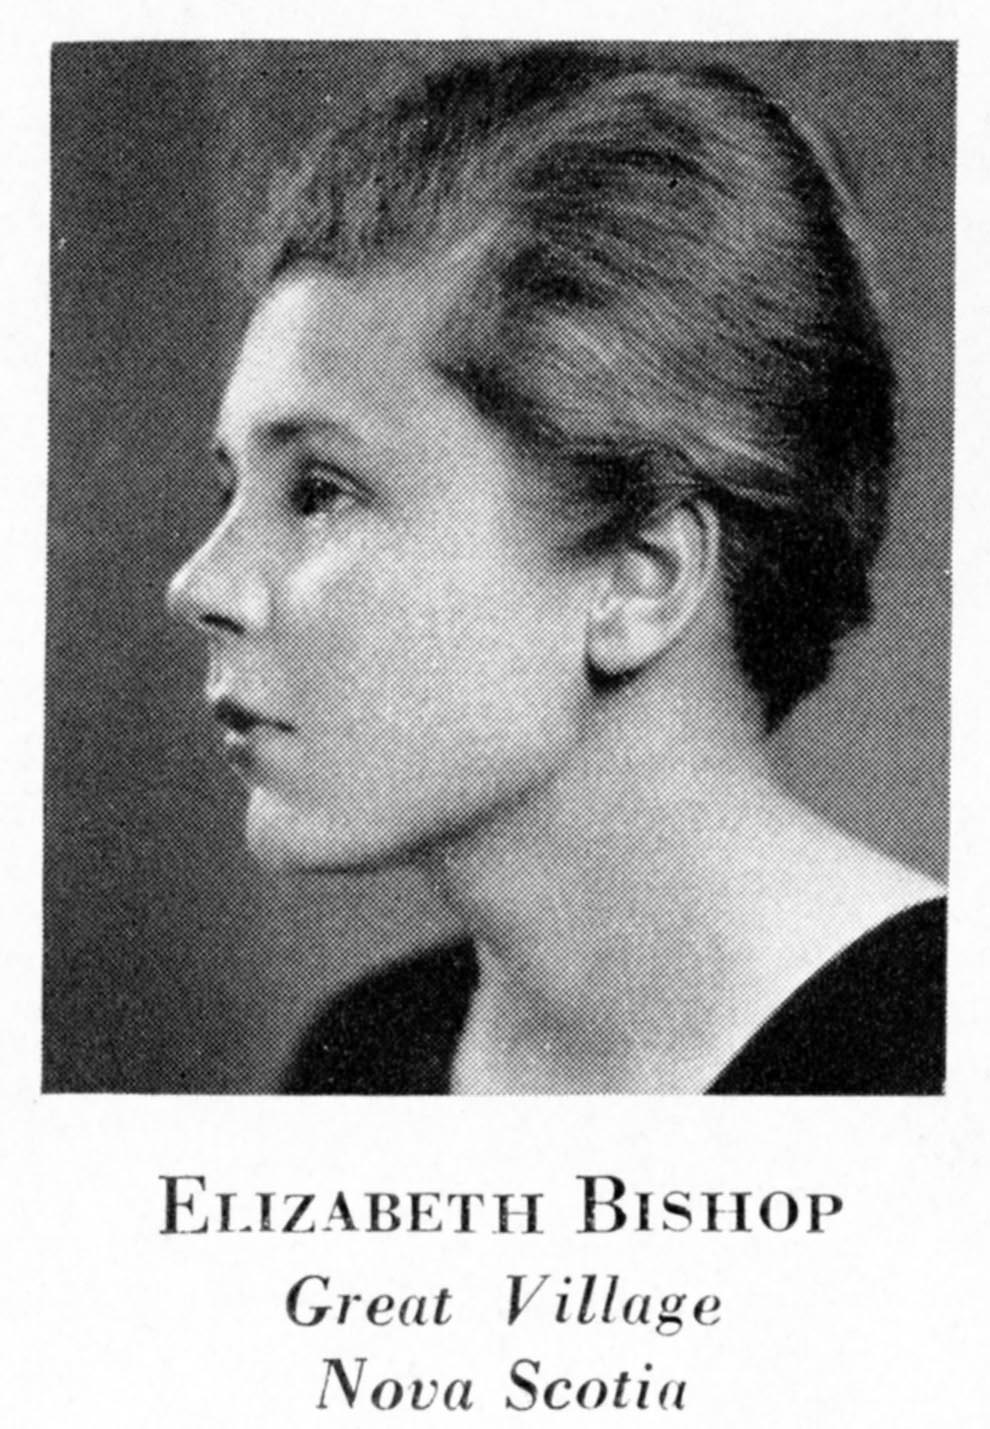 What makes an Elizabeth Bishop poem an Elizabeth bishop poem? What makes her poems special? PLEASE HELP.!?